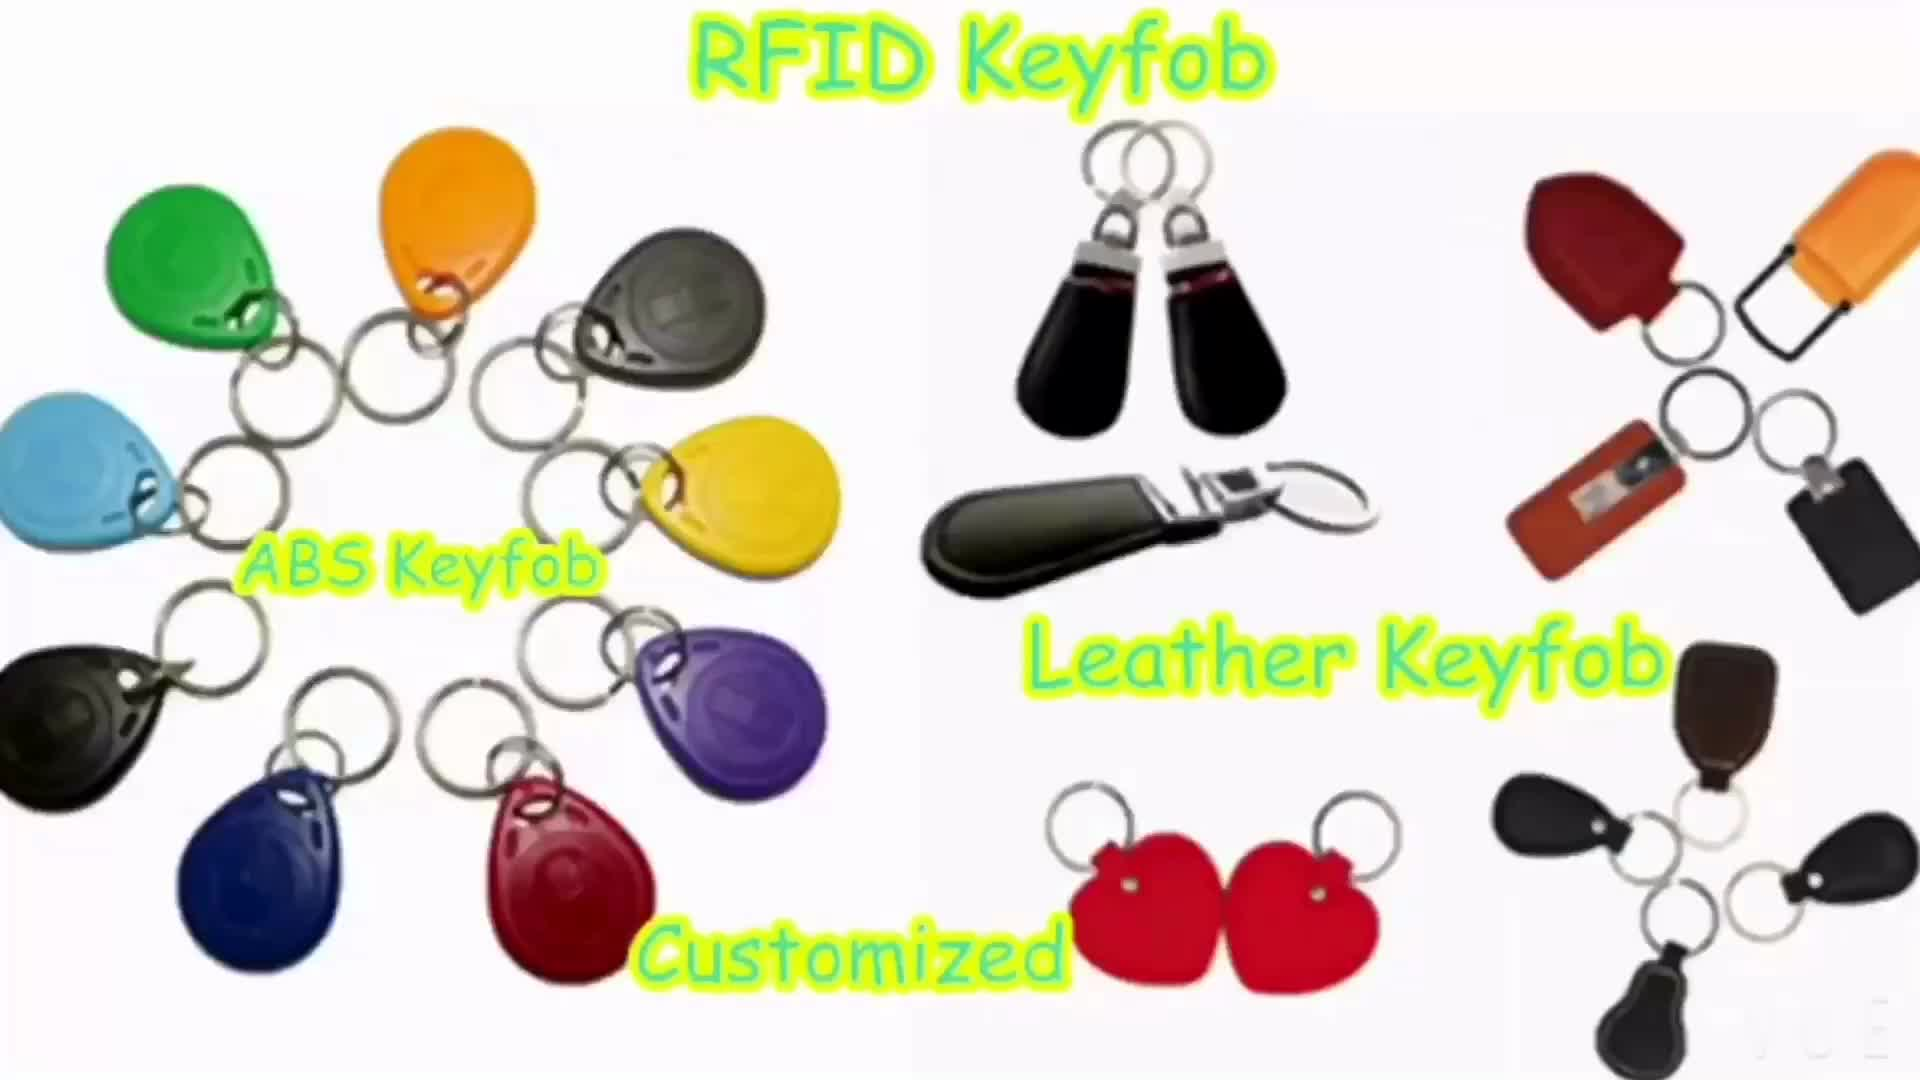 Wholesale 125Khz rfid key fob ABS key tags waterproof rfid keyfob for access control